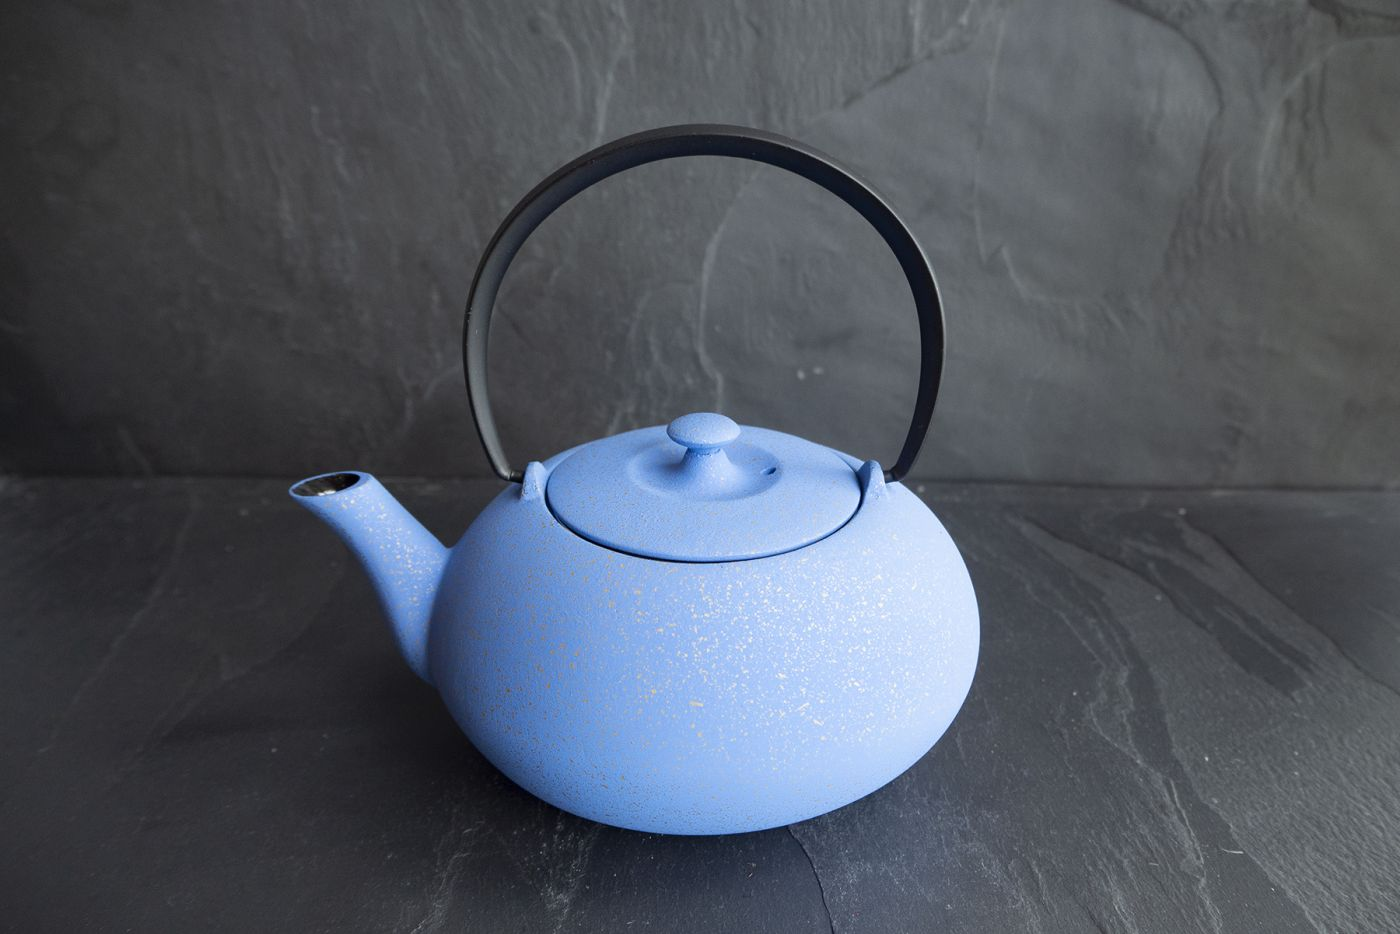 Wazuqu Gitane Blue/Gold Japanese Cast Iron Teapot 0.55L